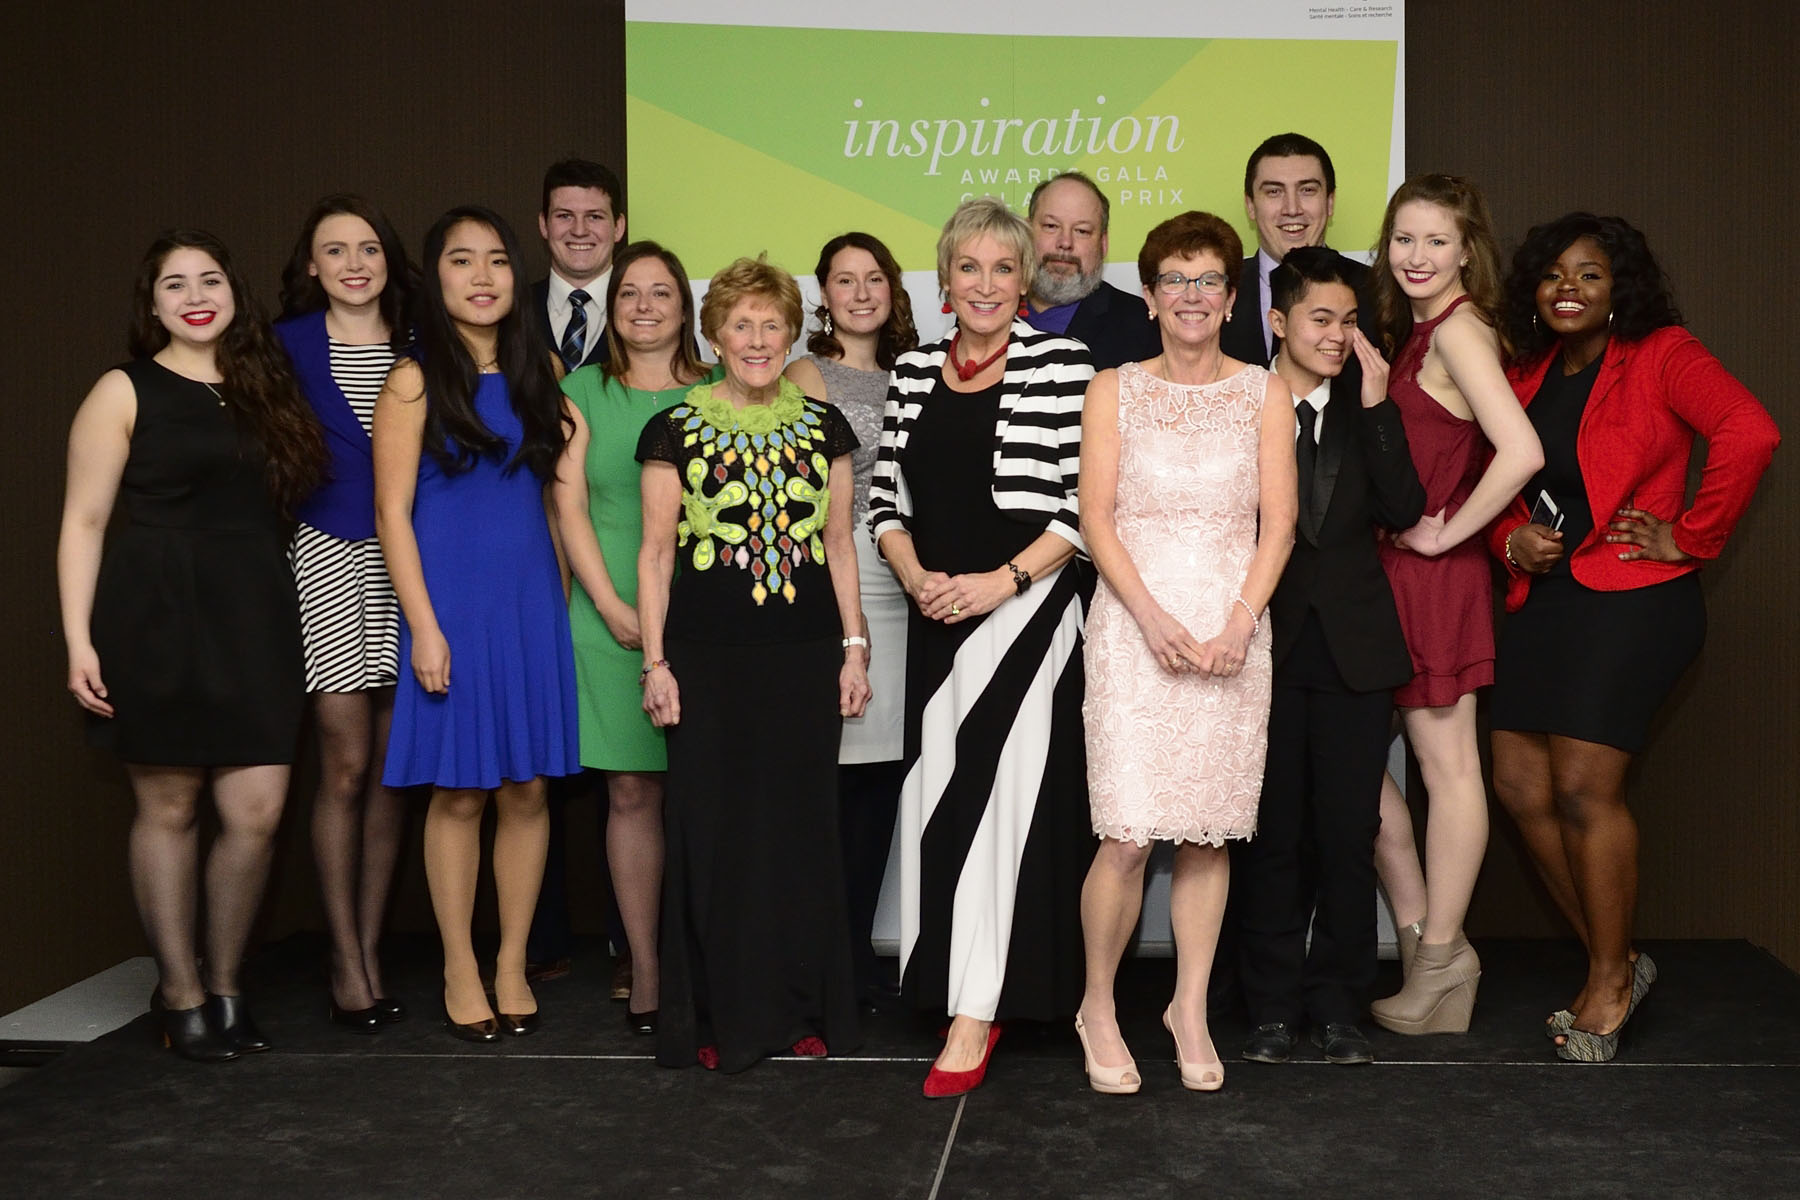 Her Excellency Sharon Johnston received The Royal's 2017 Honorary Inspiration Award during the organization's 14th Annual Inspiration Awards Gala on March 3, 2017 at the Delta Ottawa City Centre. The awards are a celebration of the incredible contributions being made to mental health.